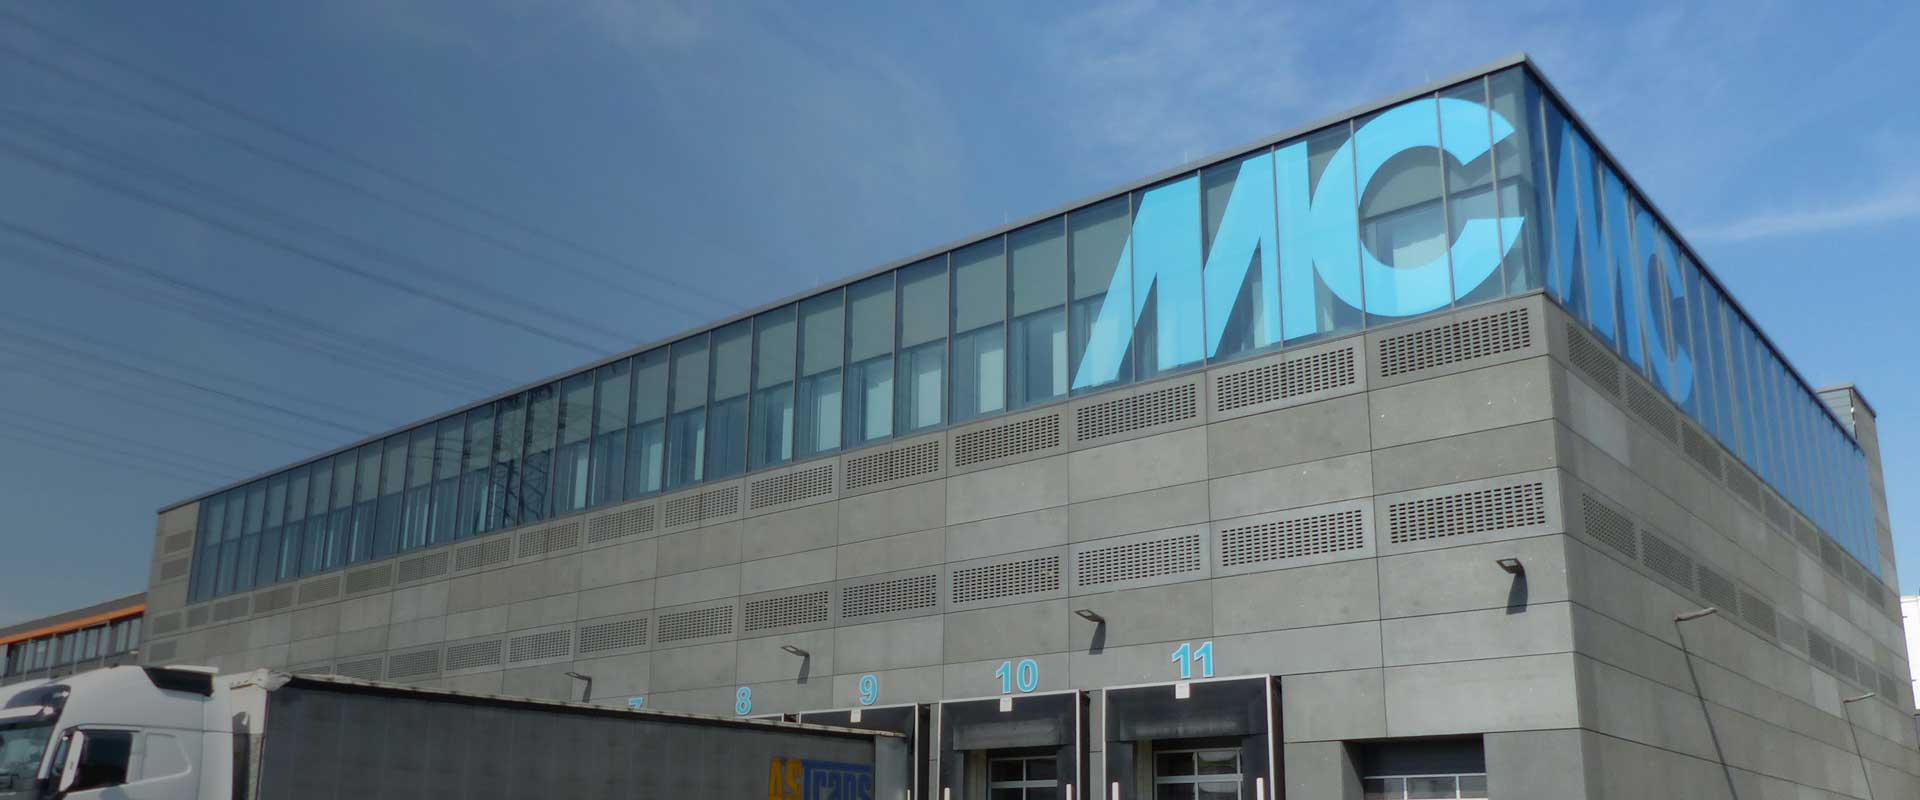 New facility at MC-Bauchemie in Bottrop